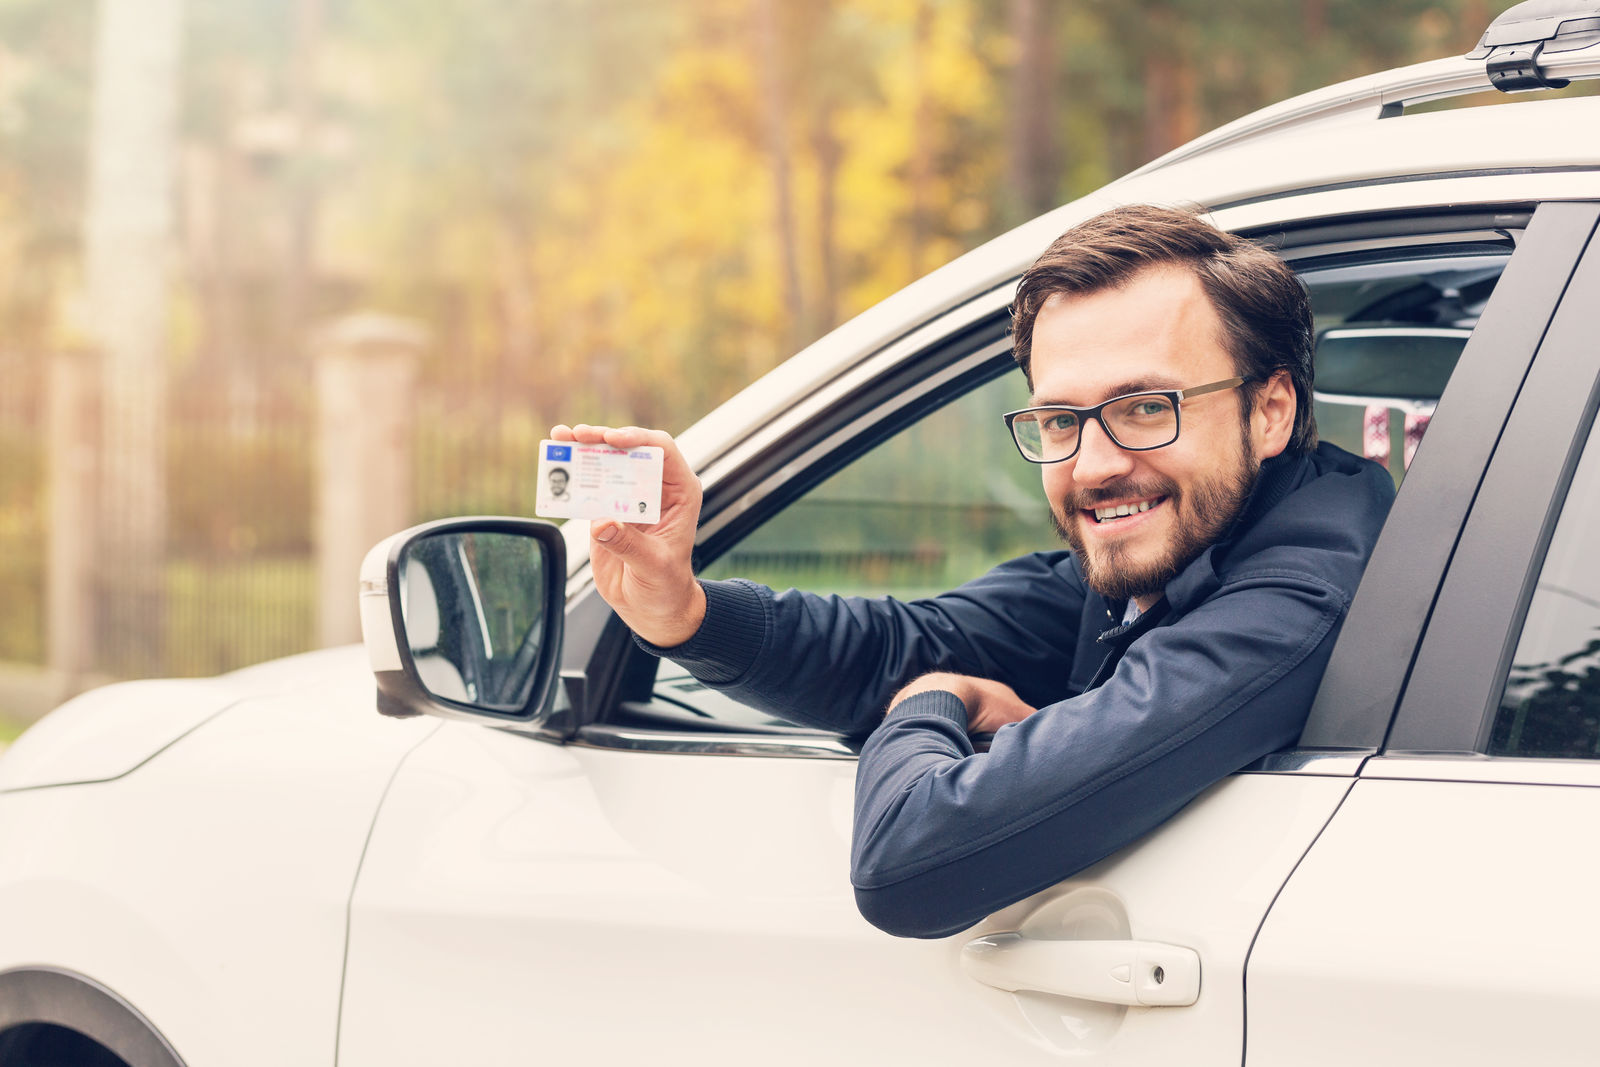 elegant insurance car quebec arleen specs release auto simple comparing saved in rates redesign big unique image date trend by company infinity price